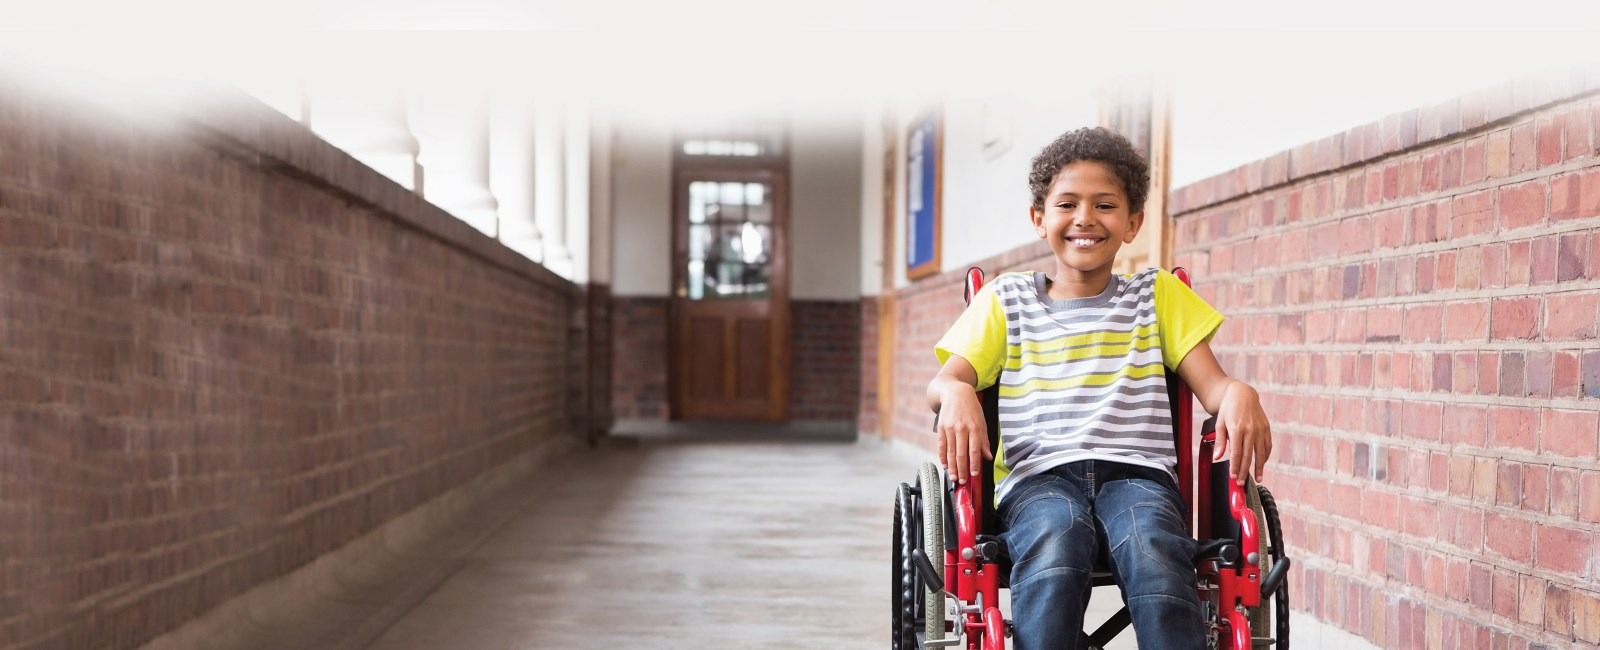 disabled child in hallway